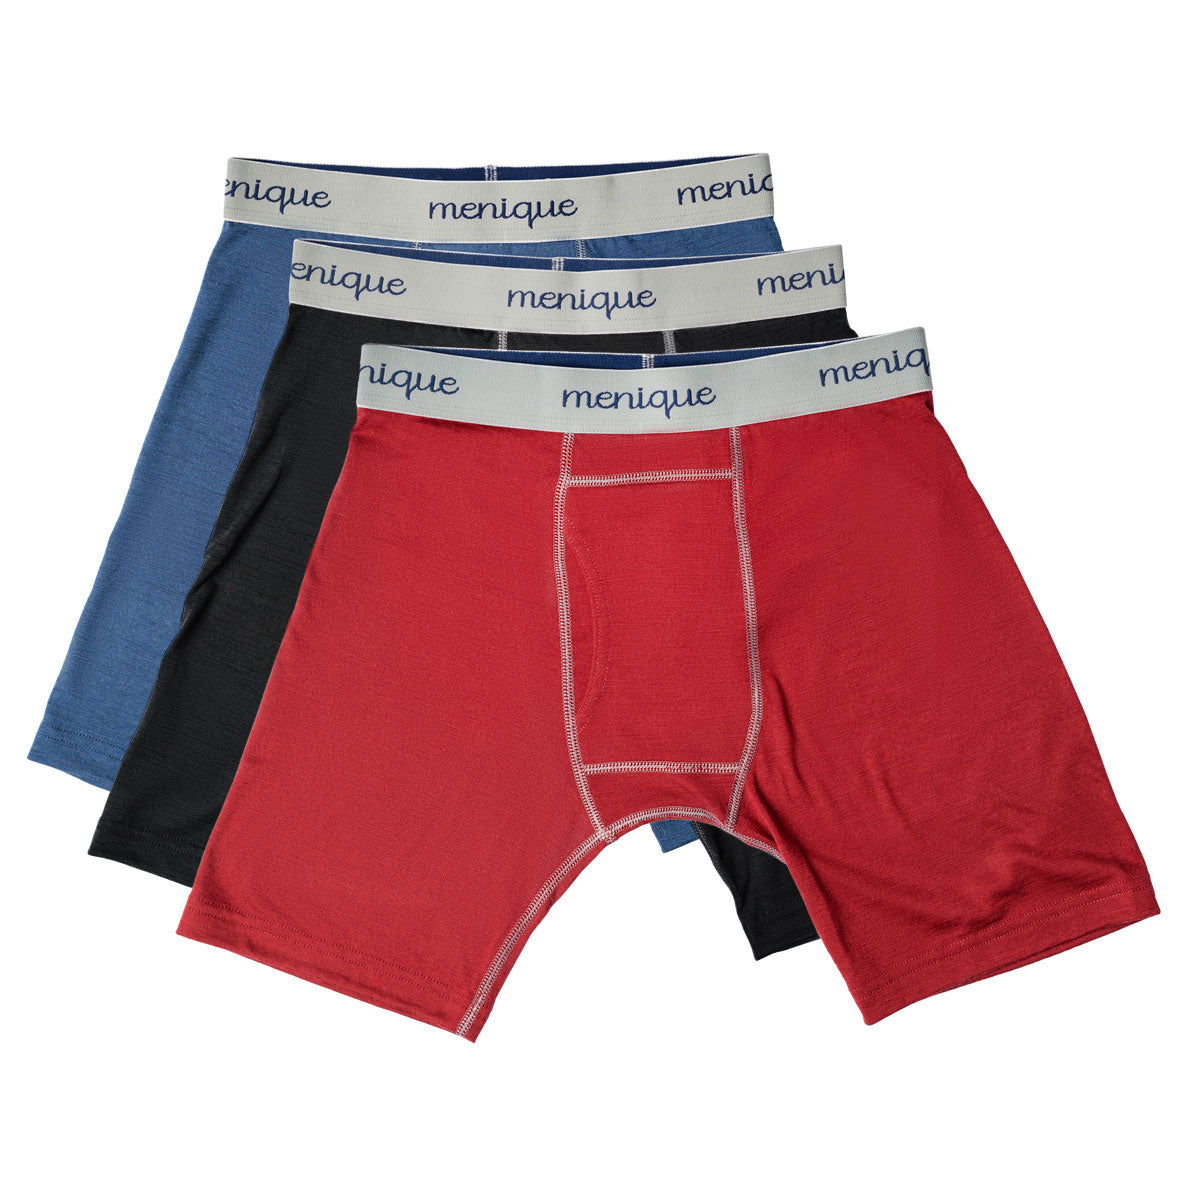 menique Men's Merino 160 Boxer Briefs 3-Pack